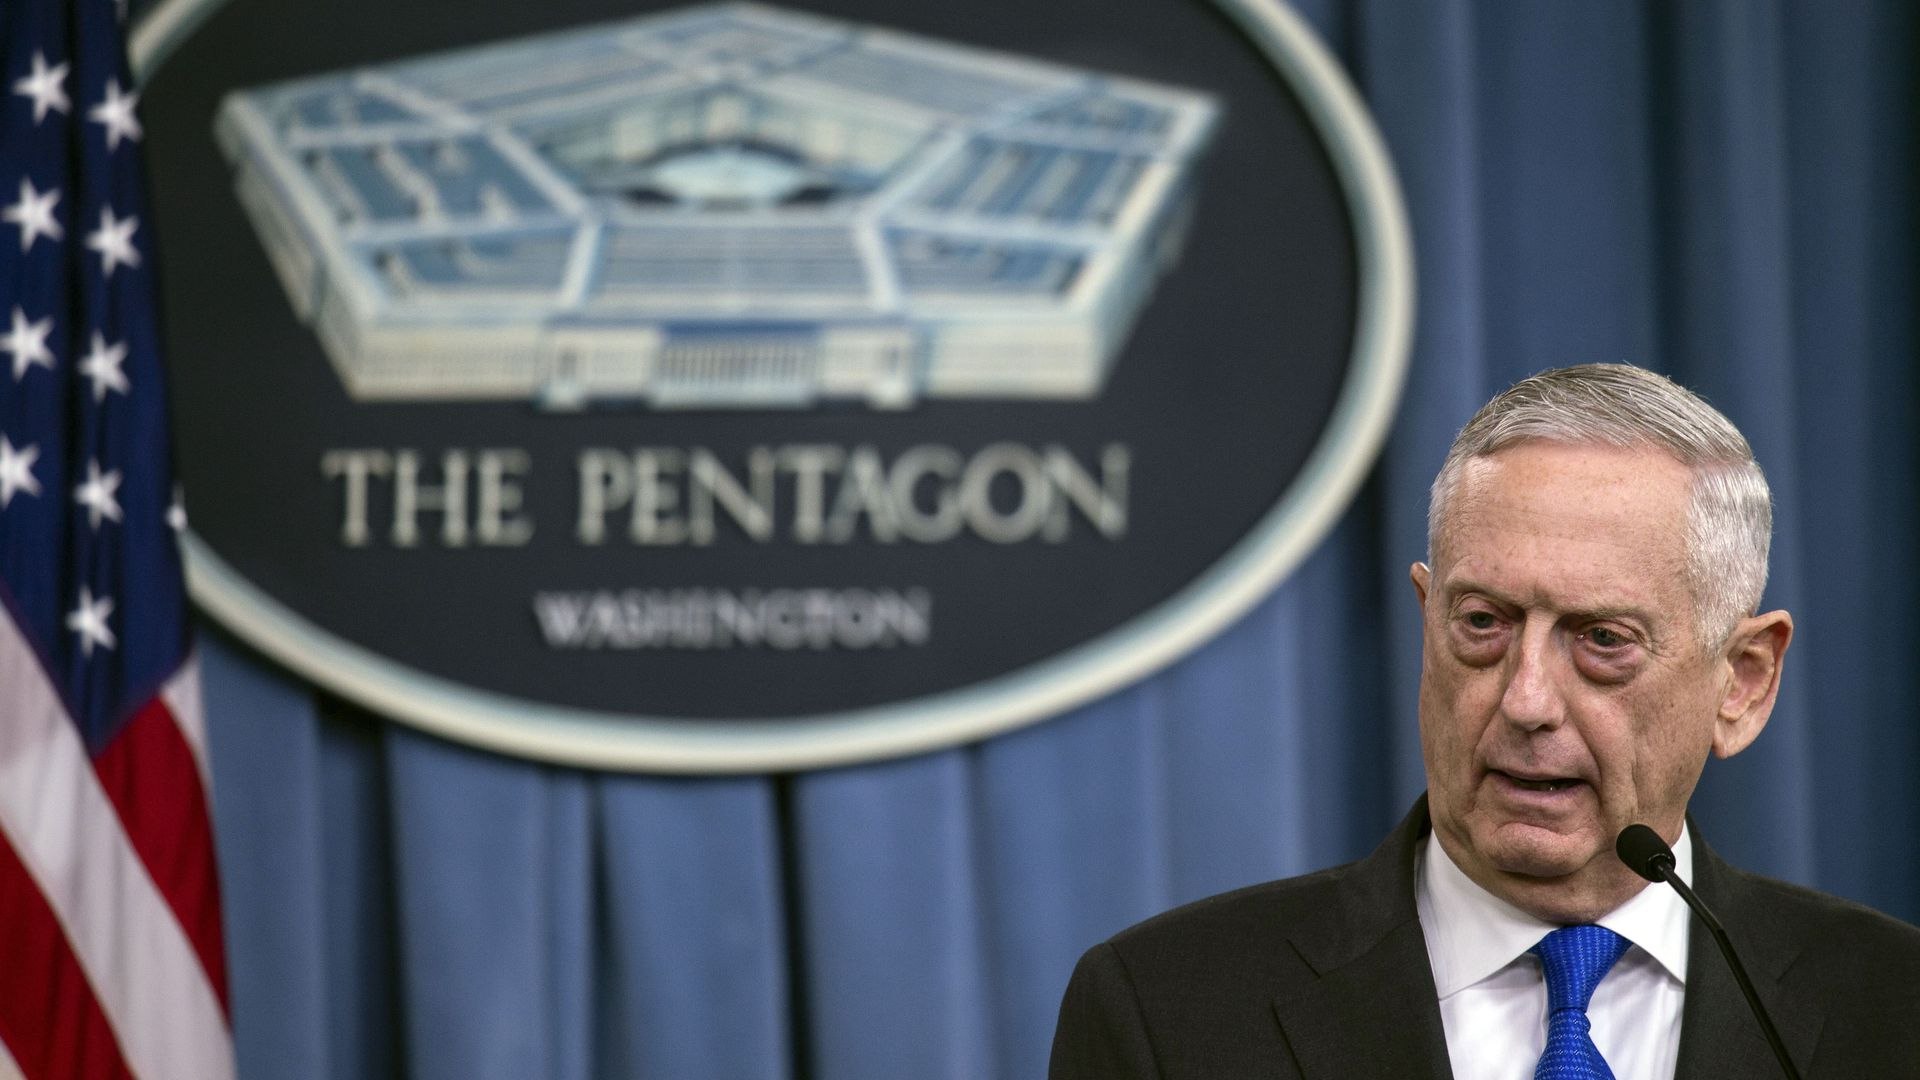 Defense Secretary Jim Mattis holds a press conference at the Pentagon on August 28, 2018.